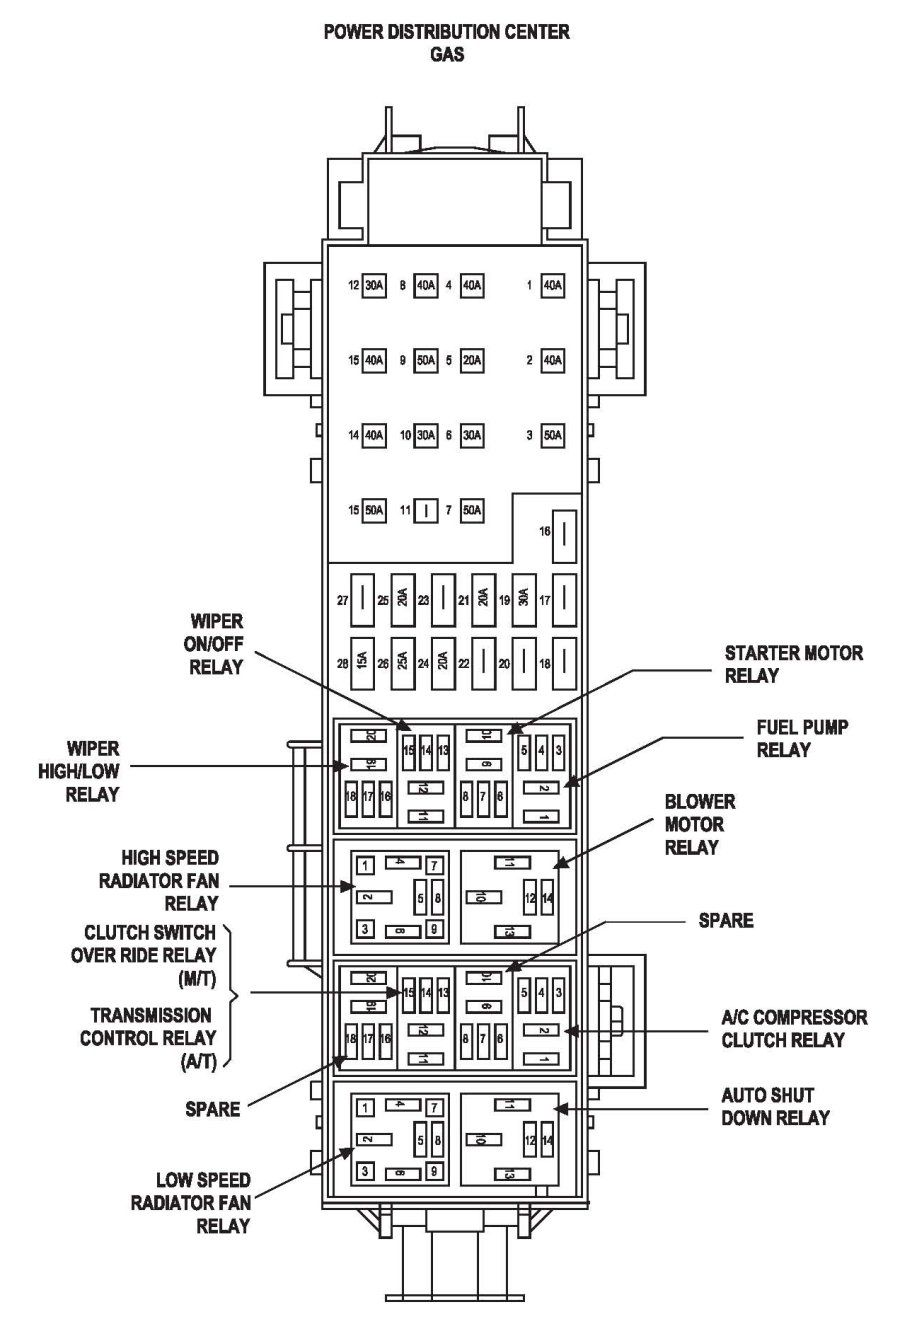 b3536c3739783eb19f827744cc42c3c4 jeep liberty fuse box diagram image details jeep liberty 03 jeep liberty fuse box diagram at alyssarenee.co